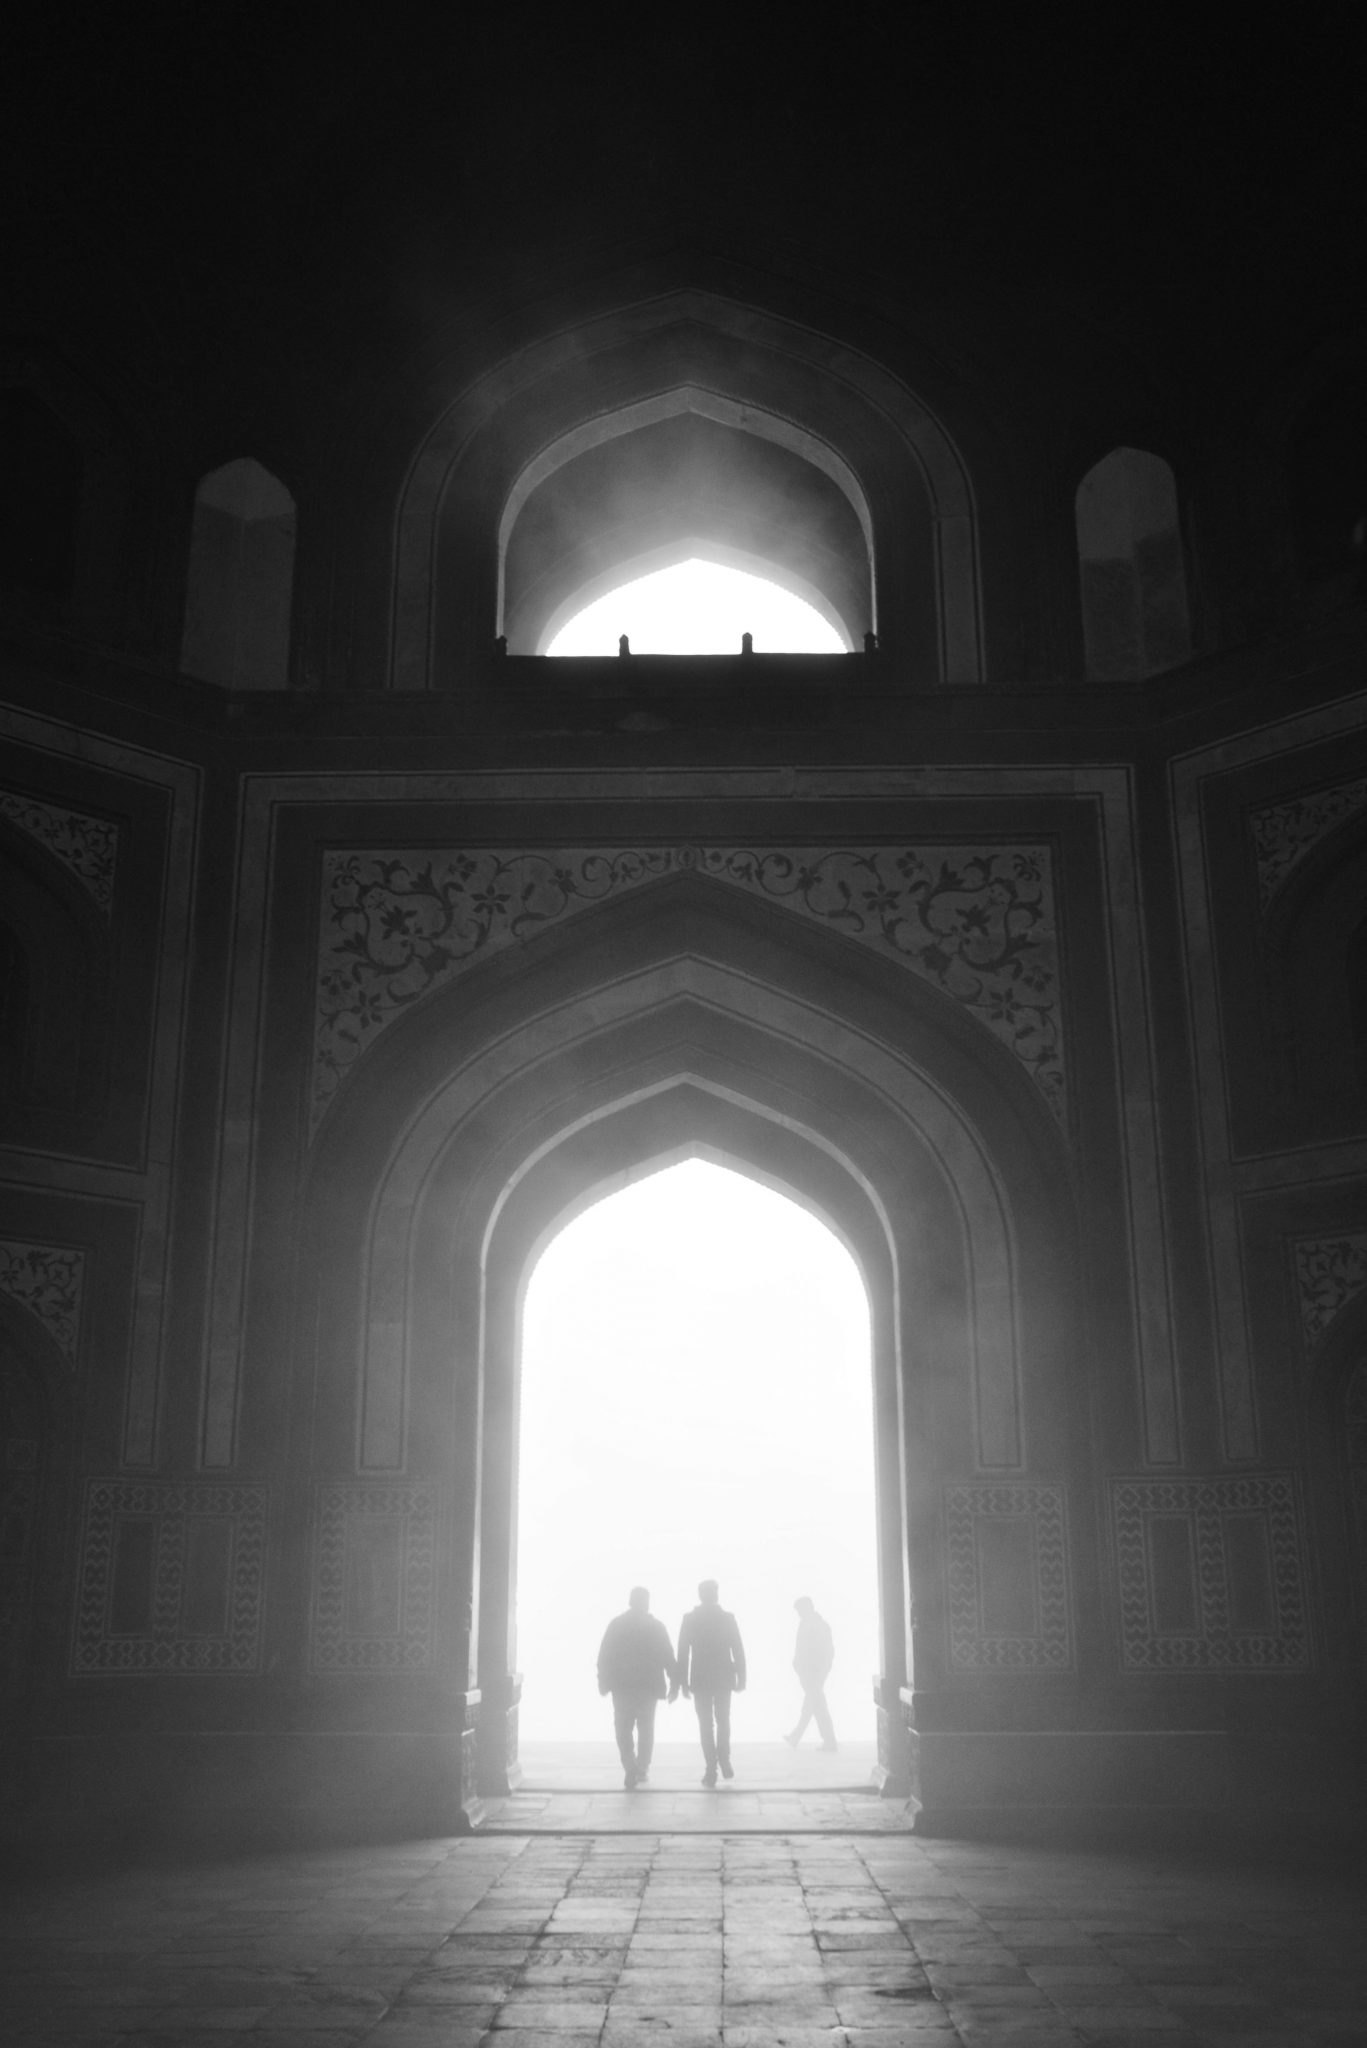 A foggy morning at the Taj Mahal